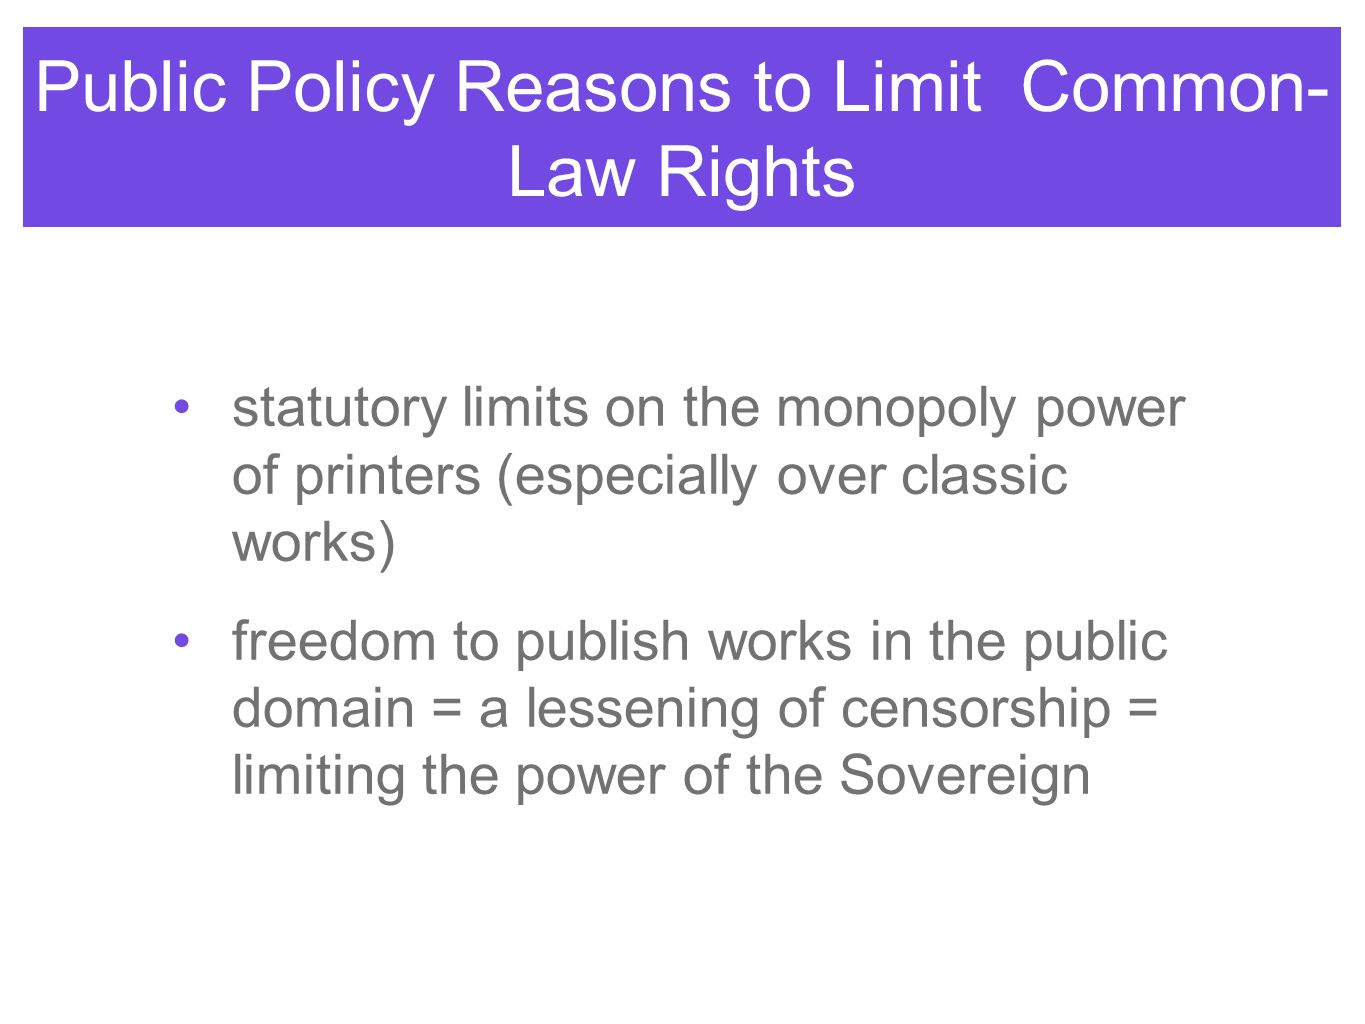 Public Policy Reasons to Limit Common-Law Rights